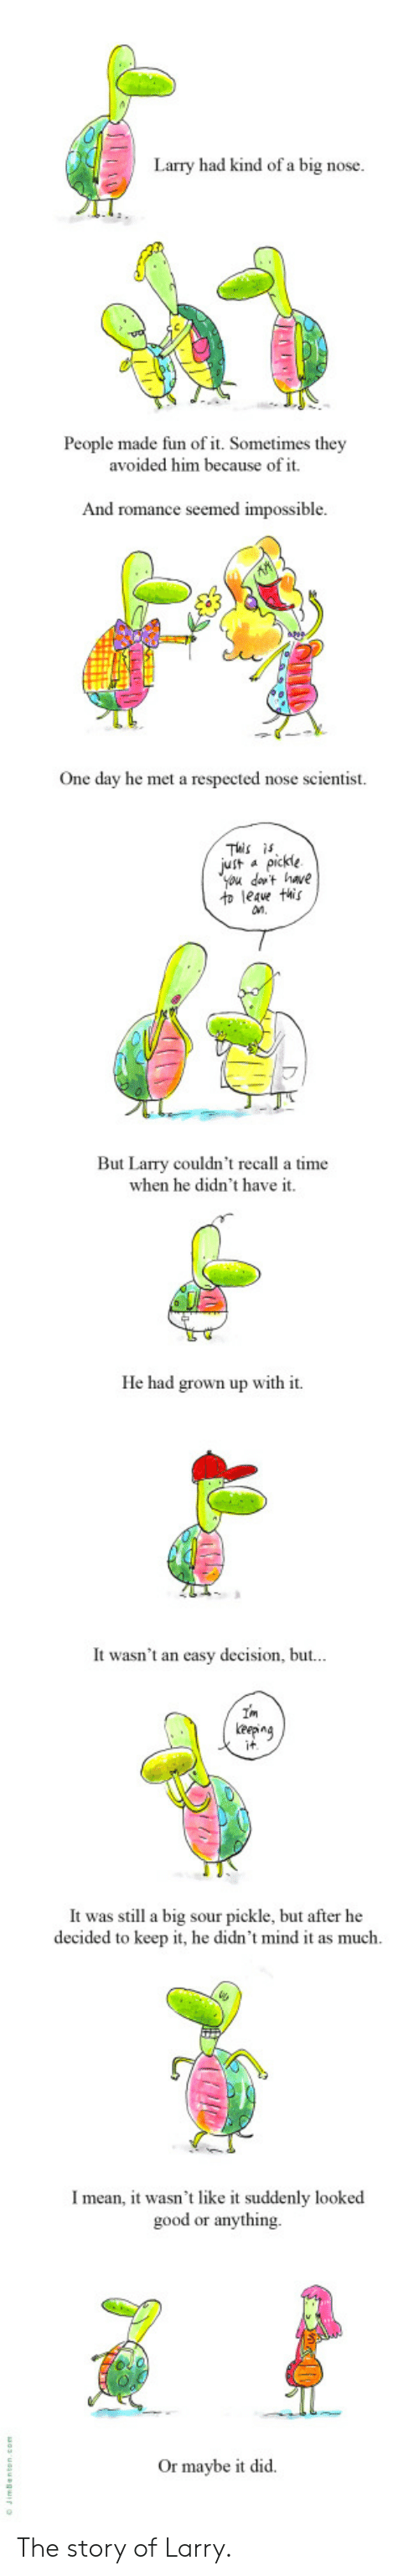 Larry: Larry had kind of a big nose.  People made fun of it. Sometimes they  avoided him because of it.  And romance seemed impossible  One day he met a respected nose scientist.  This is  Jut apickle  you dat have  to leave this  n.  But Larry couldn't recall a time  when he didn't have it.  He had grown up with it  It wasn't an easy decision, but...  Im  eepng  it  It was still a big sour pickle, but after he  decided to keep it, he didn't mind it as much  Imean, it wasn't like it suddenly looked  good or anything  Or maybe it did The story of Larry.